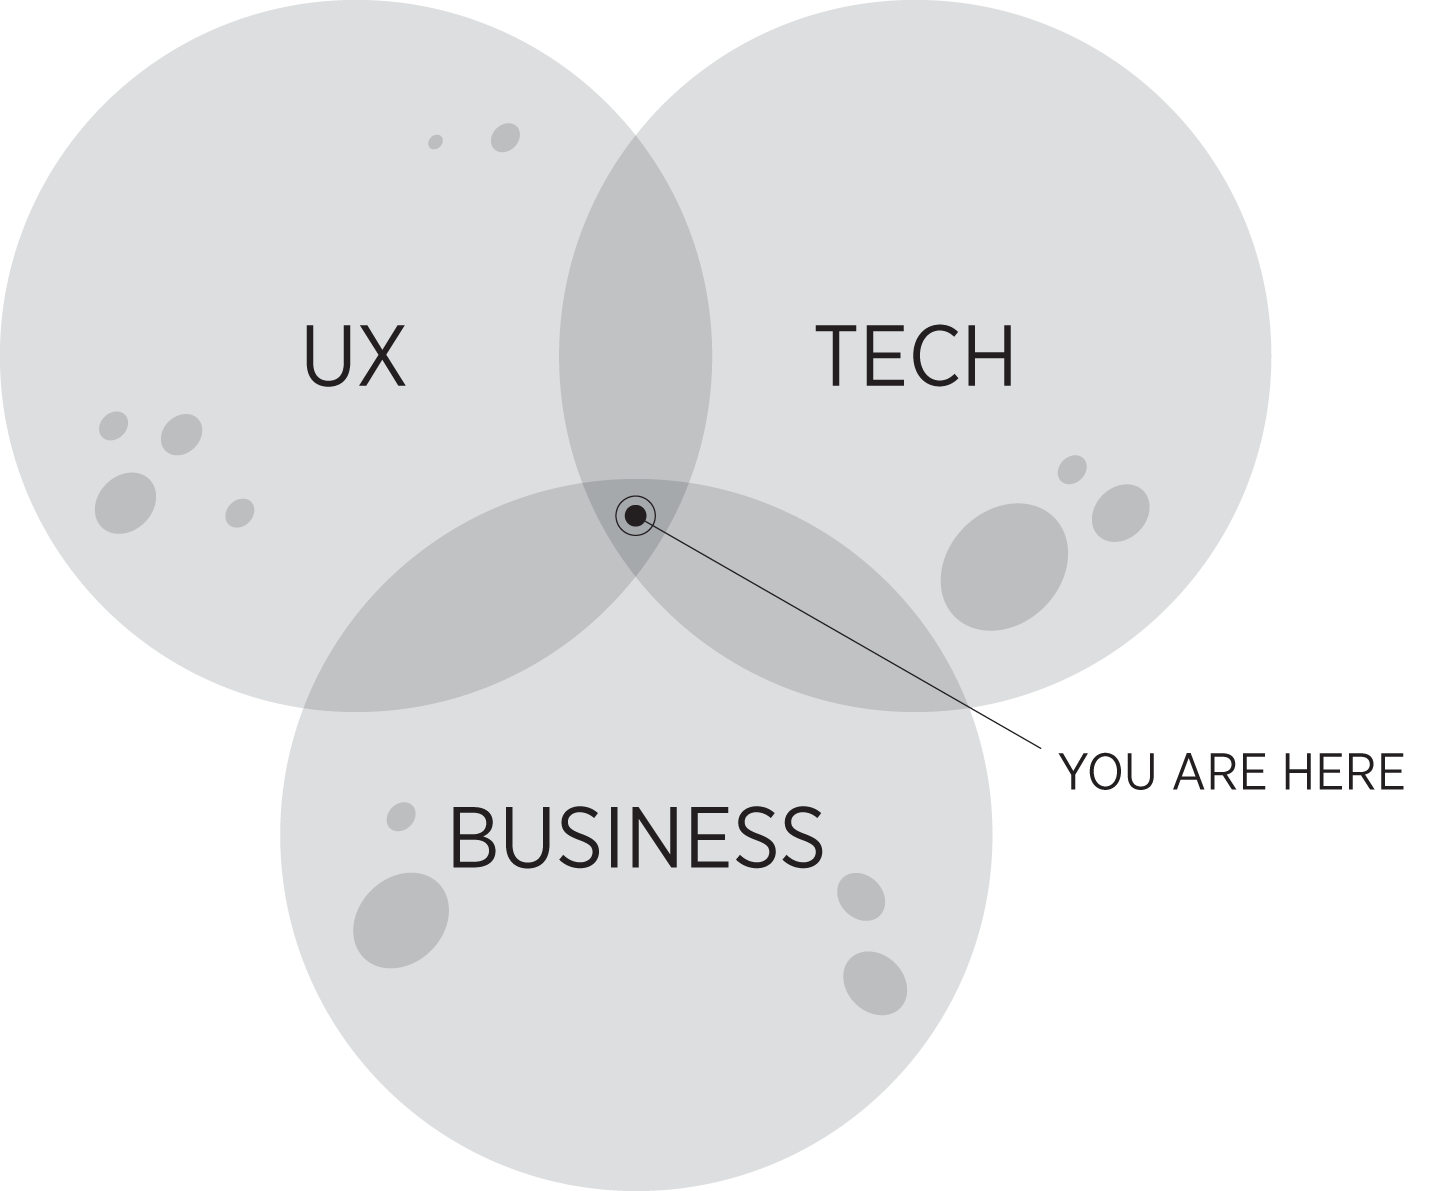 Product management has been called the intersection between business, technology, and user experience (source: Martin Eriksson, 2011).